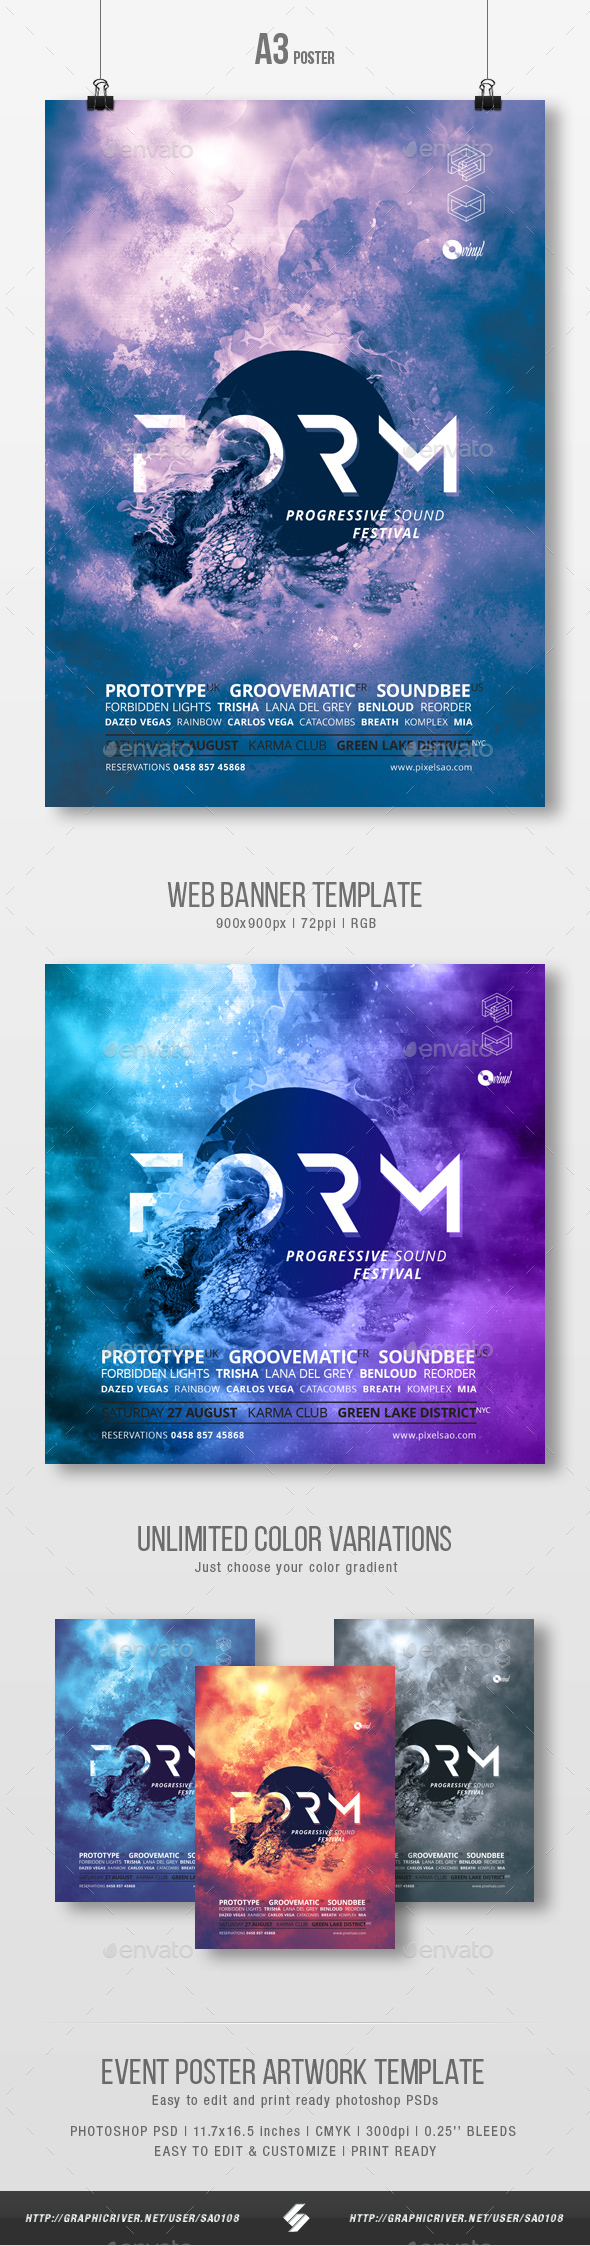 Form - Abstract Party Flyer / Poster Artwork Template A3 - Clubs & Parties Events